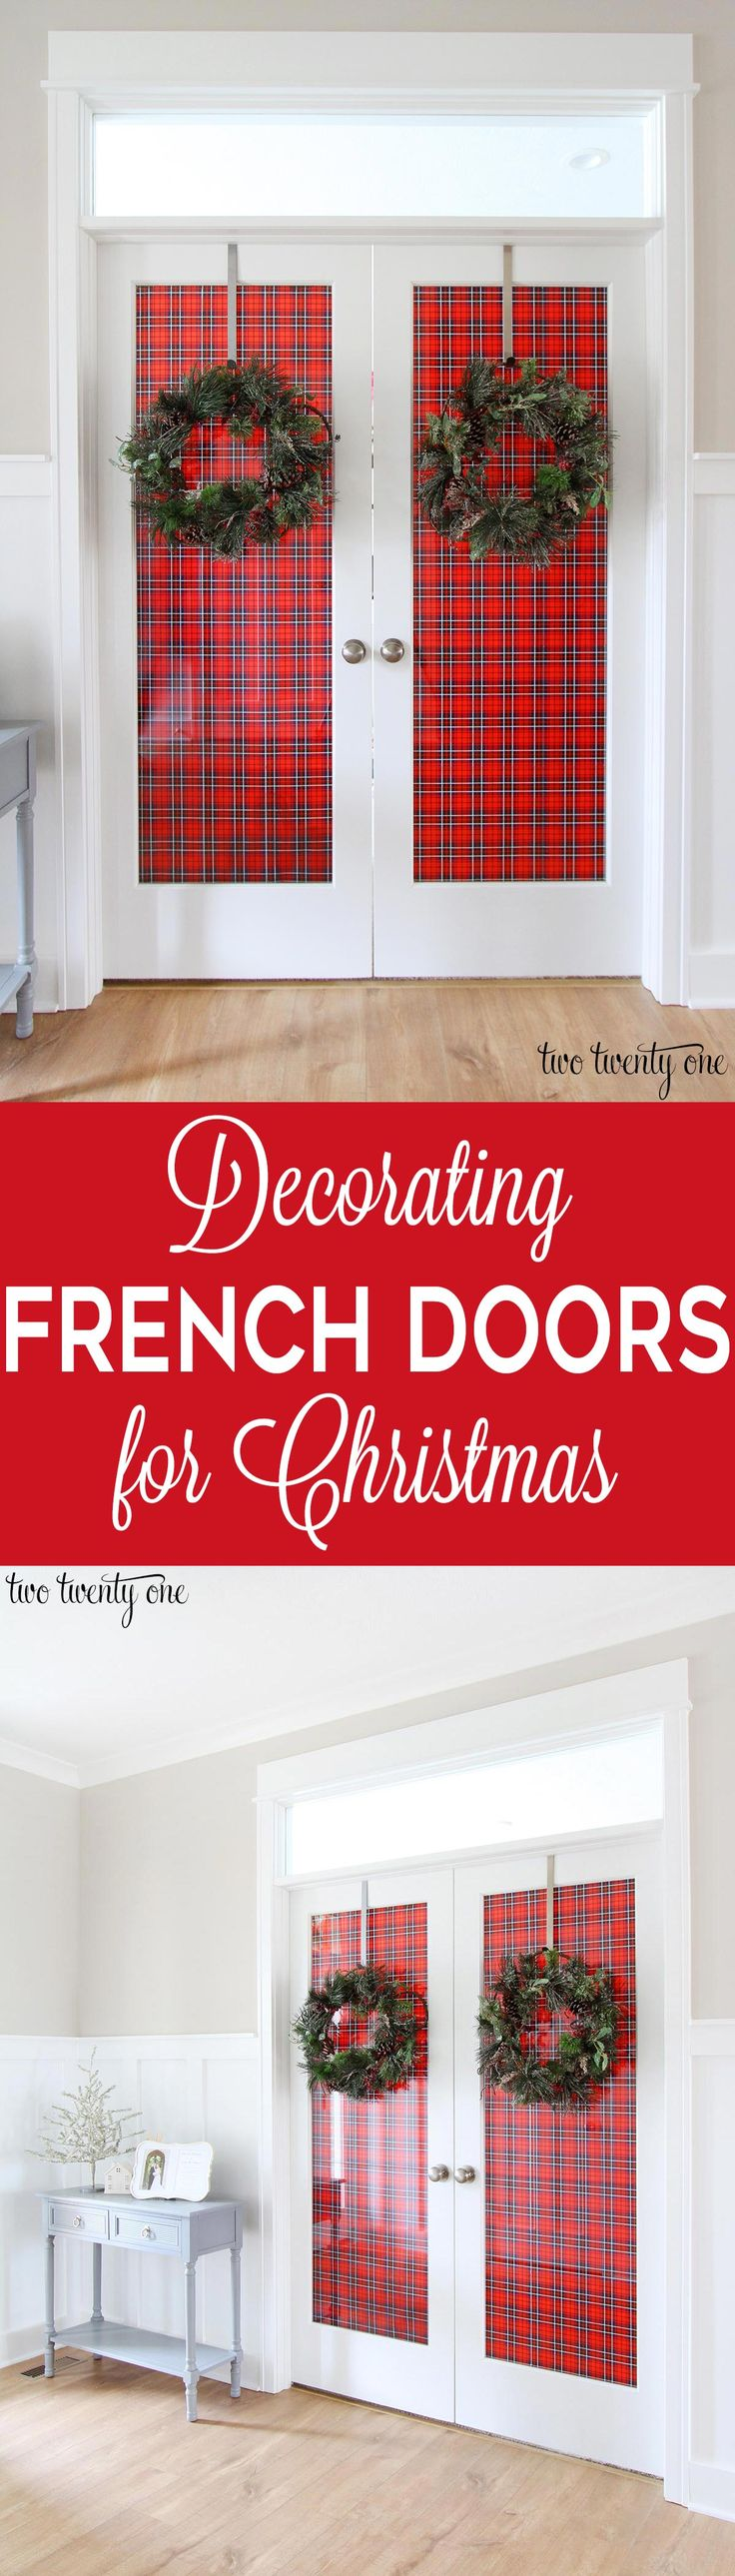 Decorating French Doors for Christmas!